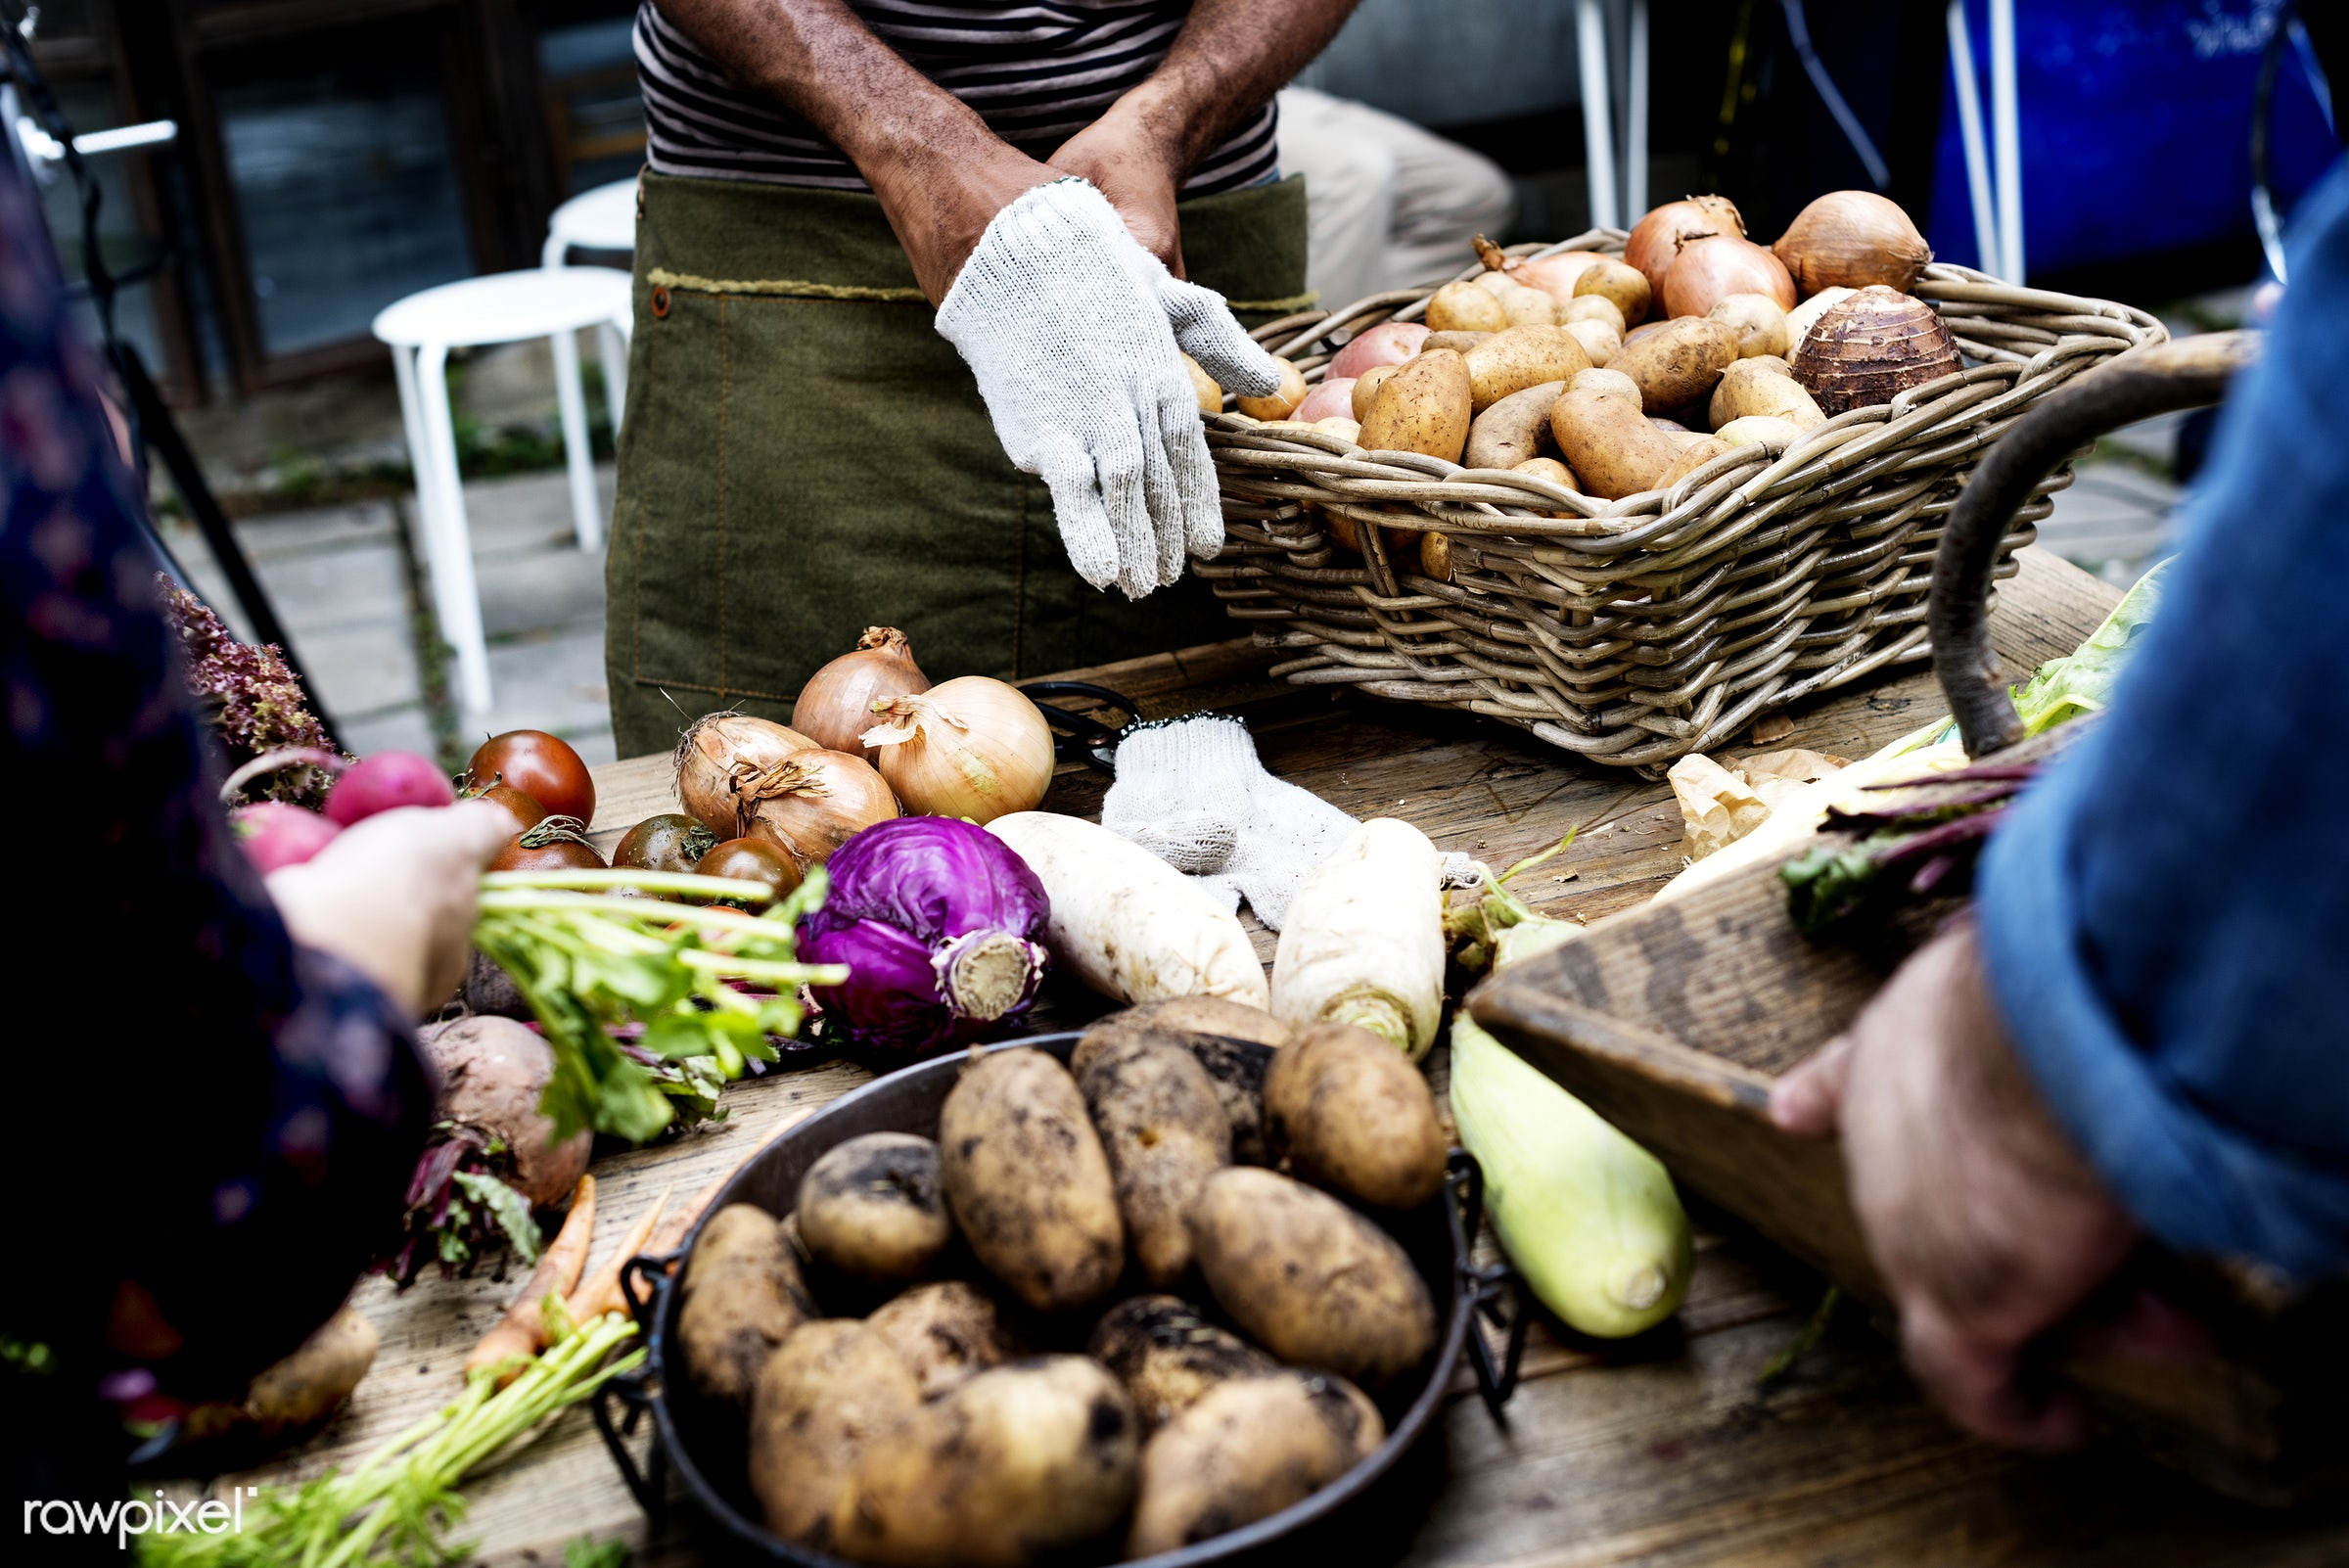 raw, buy, diverse, herbs, caucasian, farm, ingredients, nature, farmer, sell, fresh, hands, products, closeup, african...